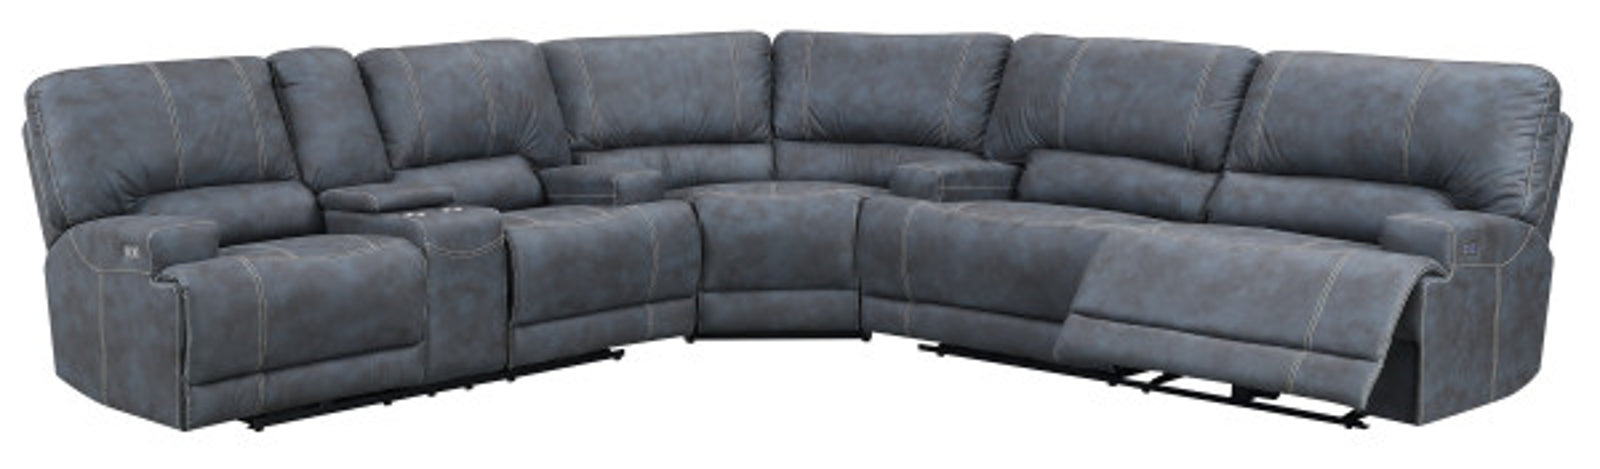 Emerald Home Furnishings Highland 3pc Sectional Sofa in Gray